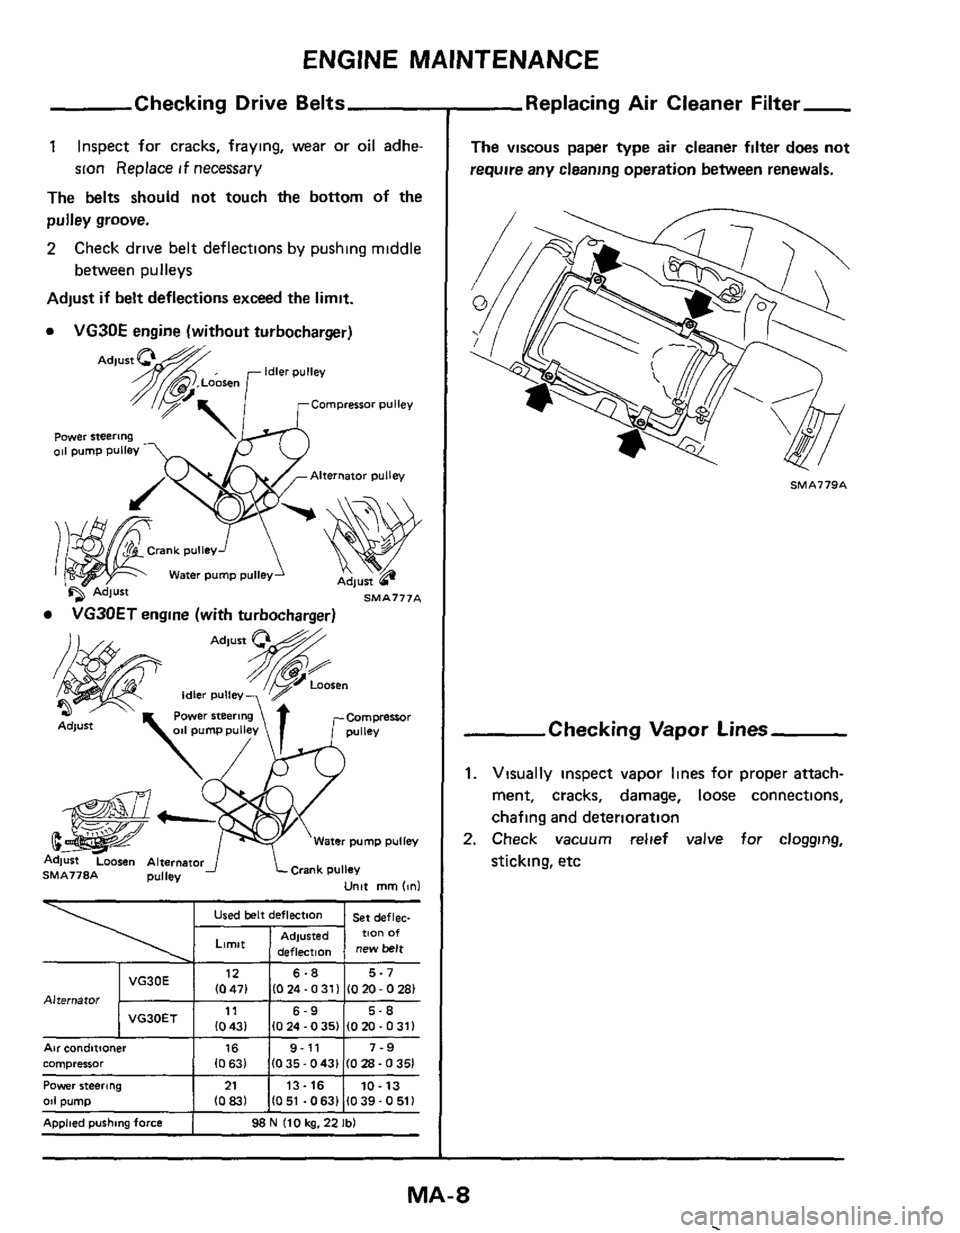 Nissan 300zx 1984 Z31 Maintenance Workshop Manual Fuel Filter Location